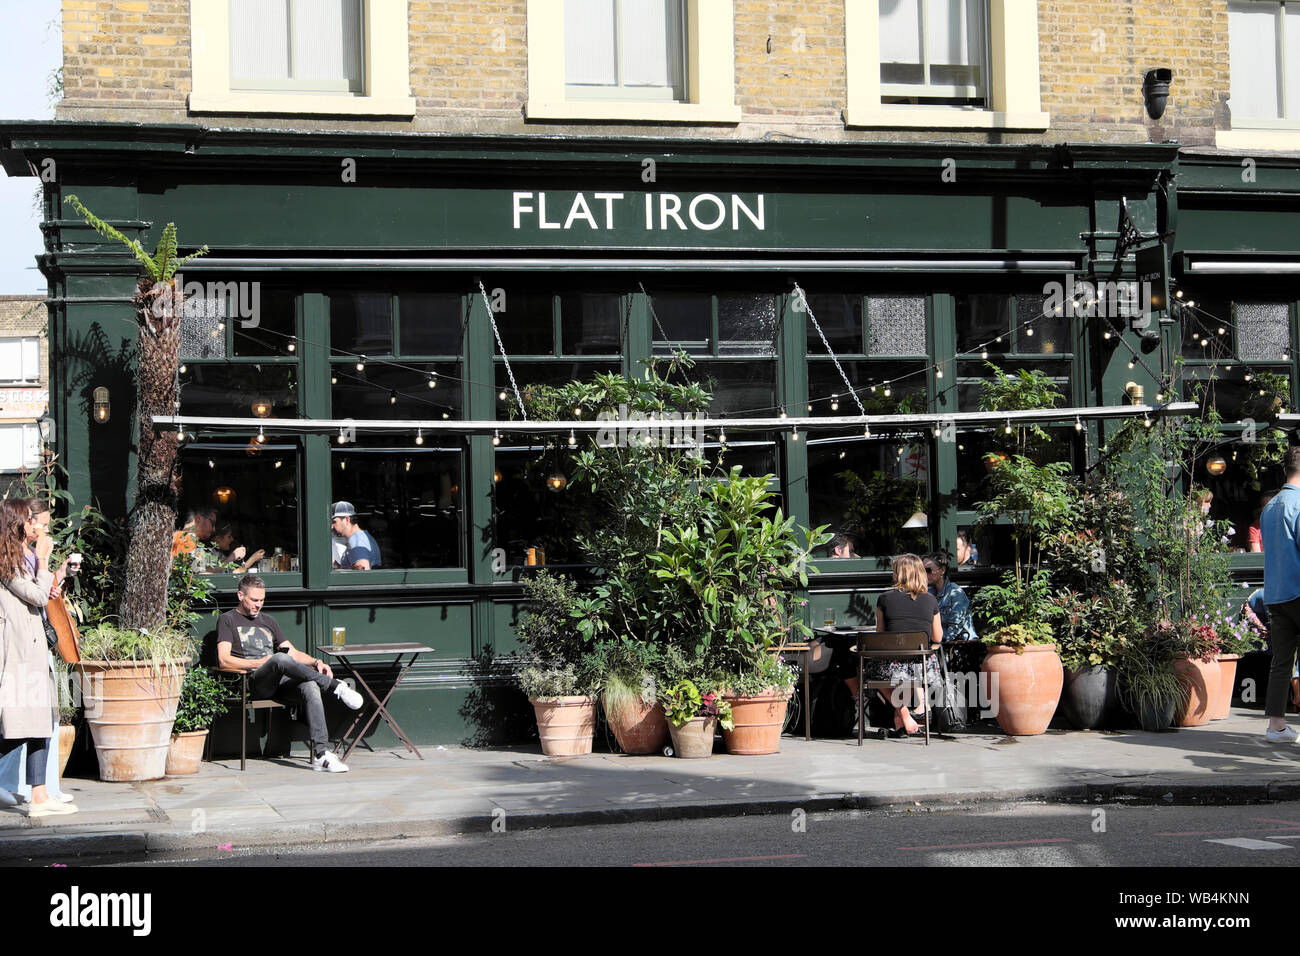 Flat iron pub and people tourists in summer on Commercial Street in Spitalfields East London E1 England UK    KATHY DEWITT Stock Photo